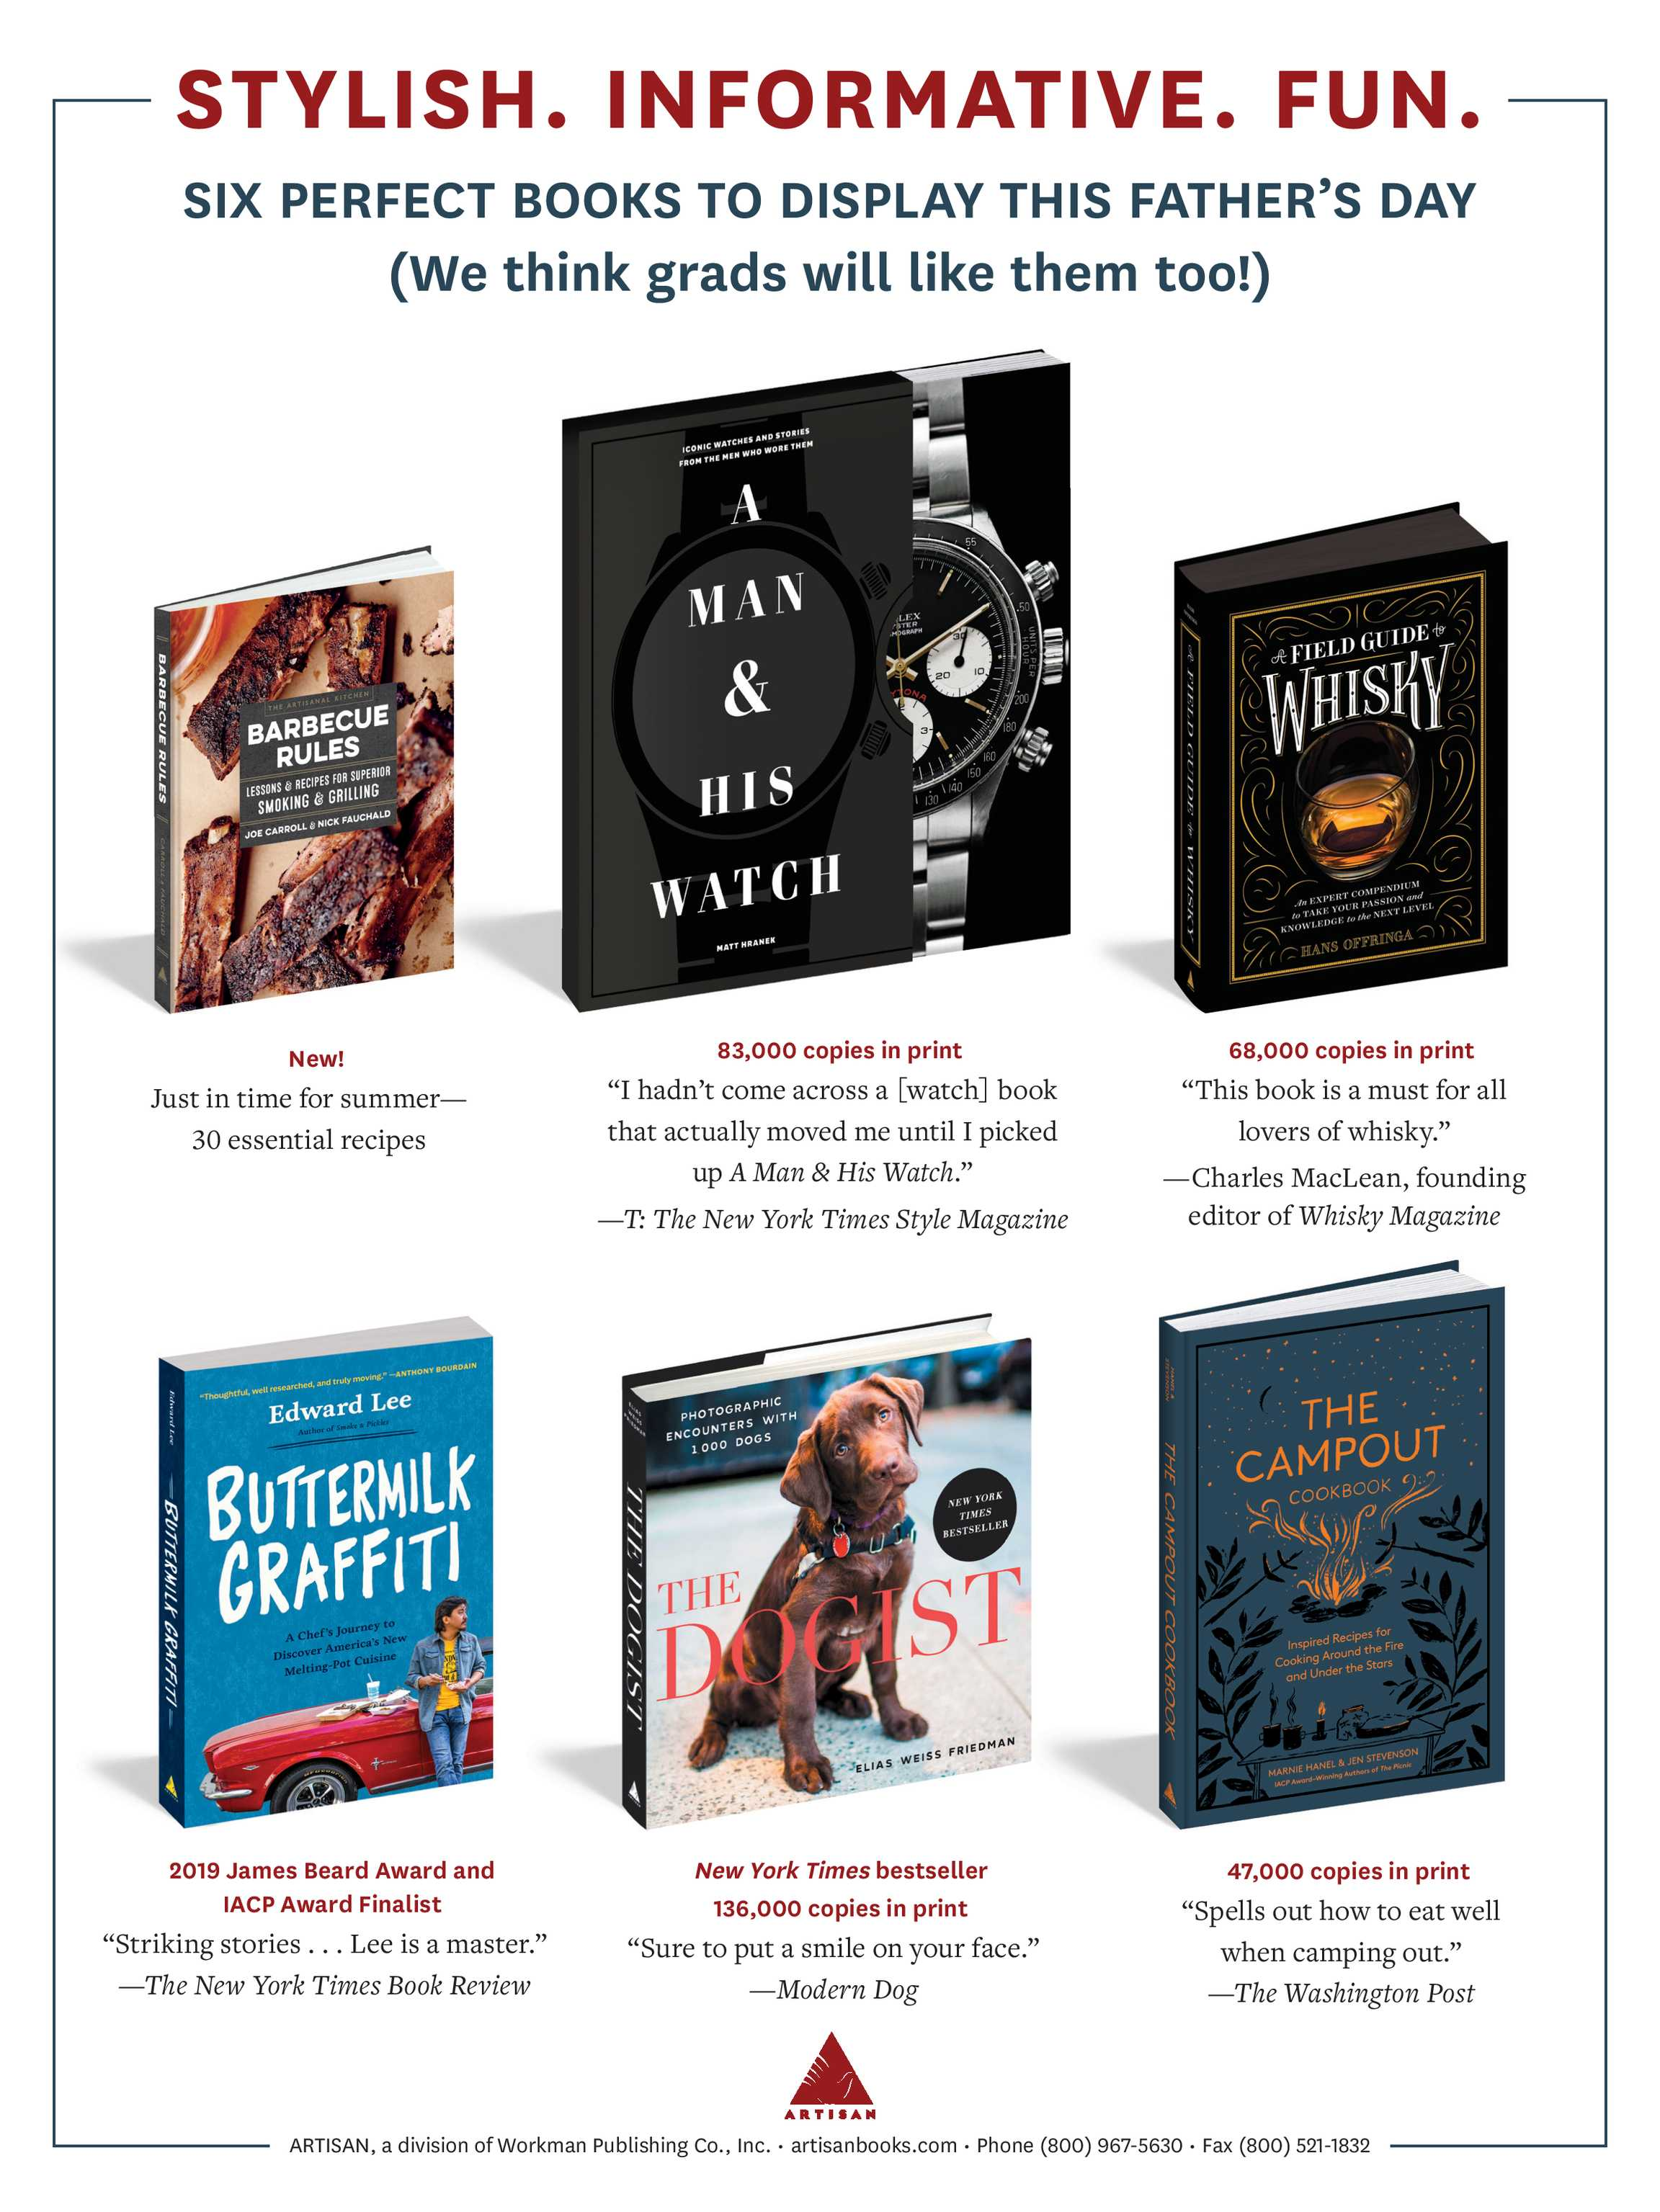 Publishers Weekly - April 29, 2019 - page 85